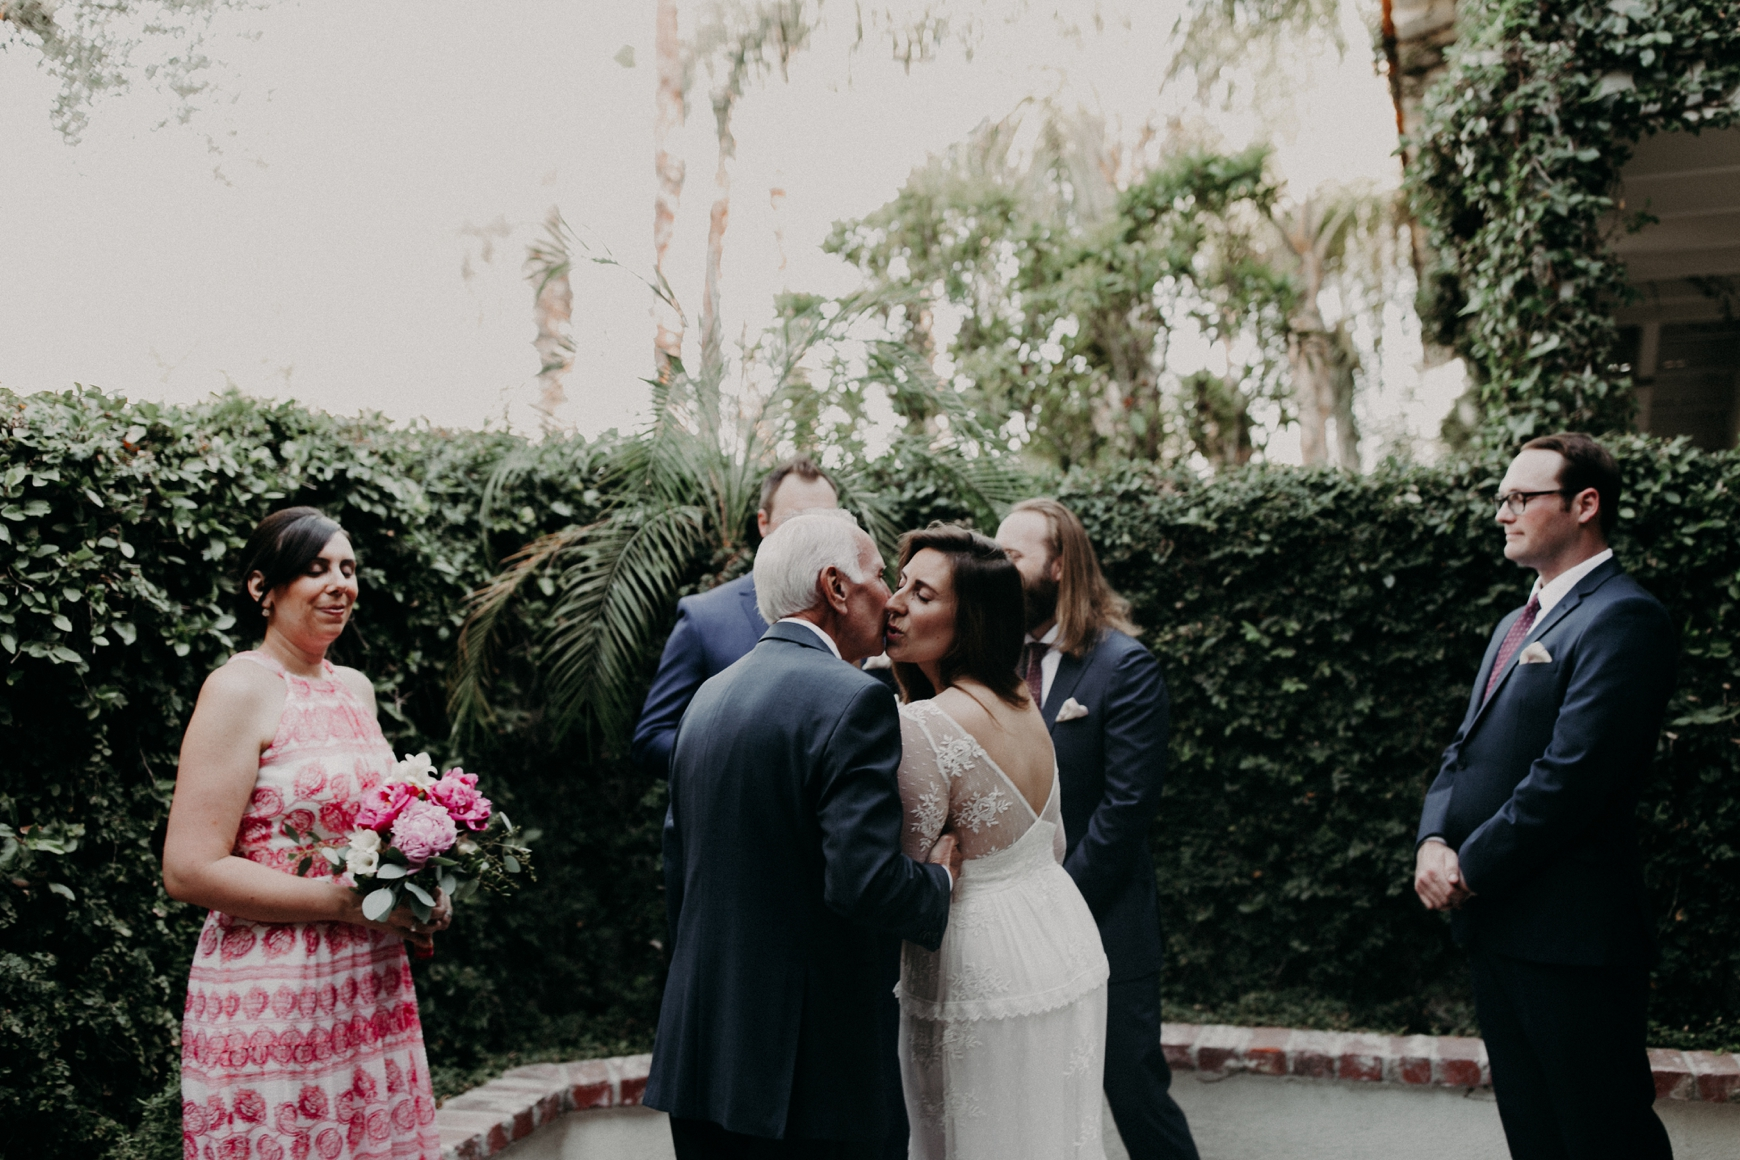 The Colony Palms Hotel Palm Springs Wedding Jaclyn & Tyson Emily Magers Photography-159.jpg